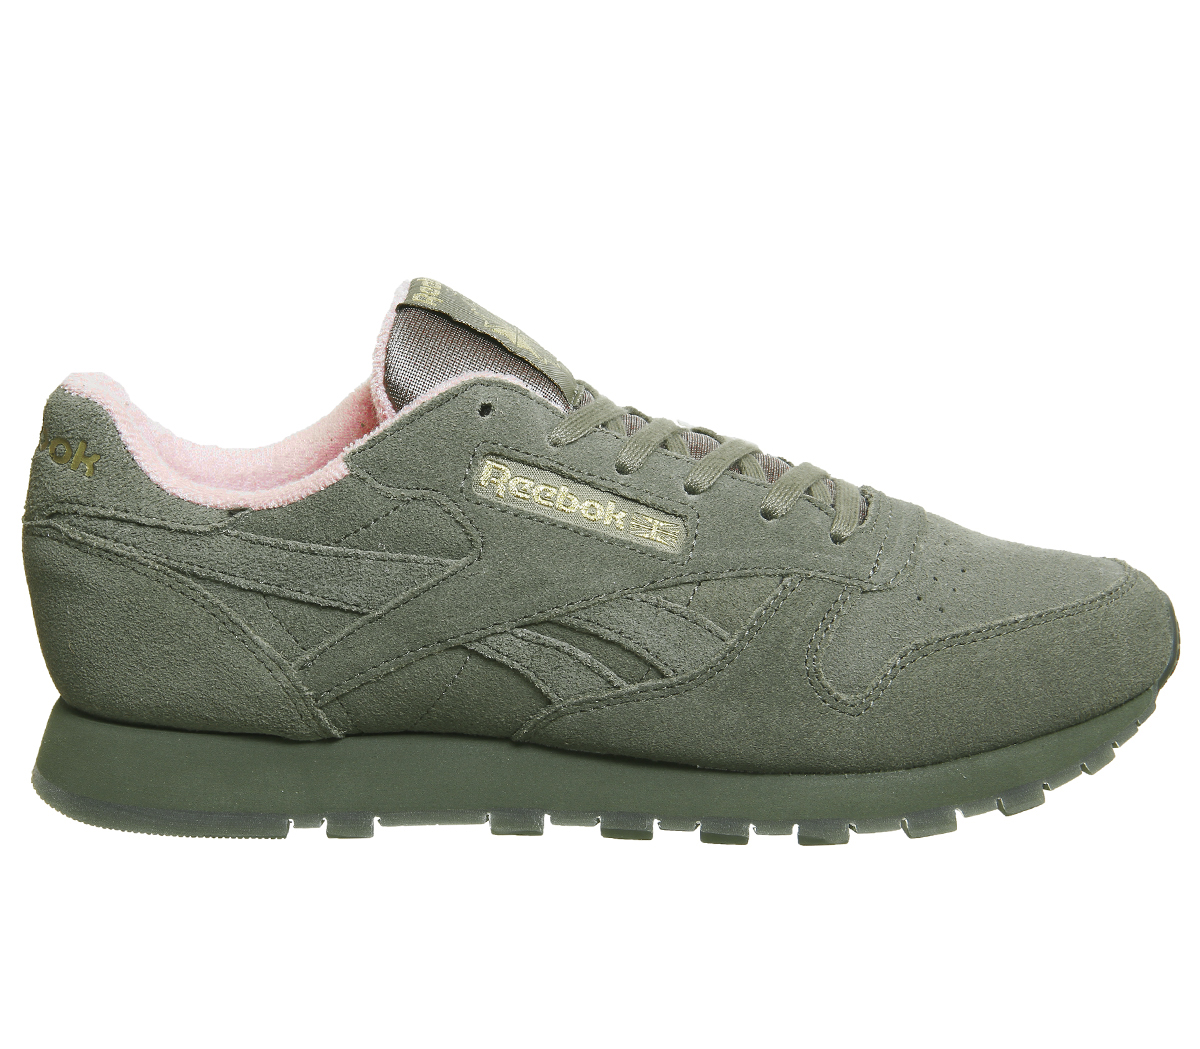 a1891b6adae62 Sentinel Womens Reebok Cl Leather Trainers Hunter Green Pink Trainers Shoes